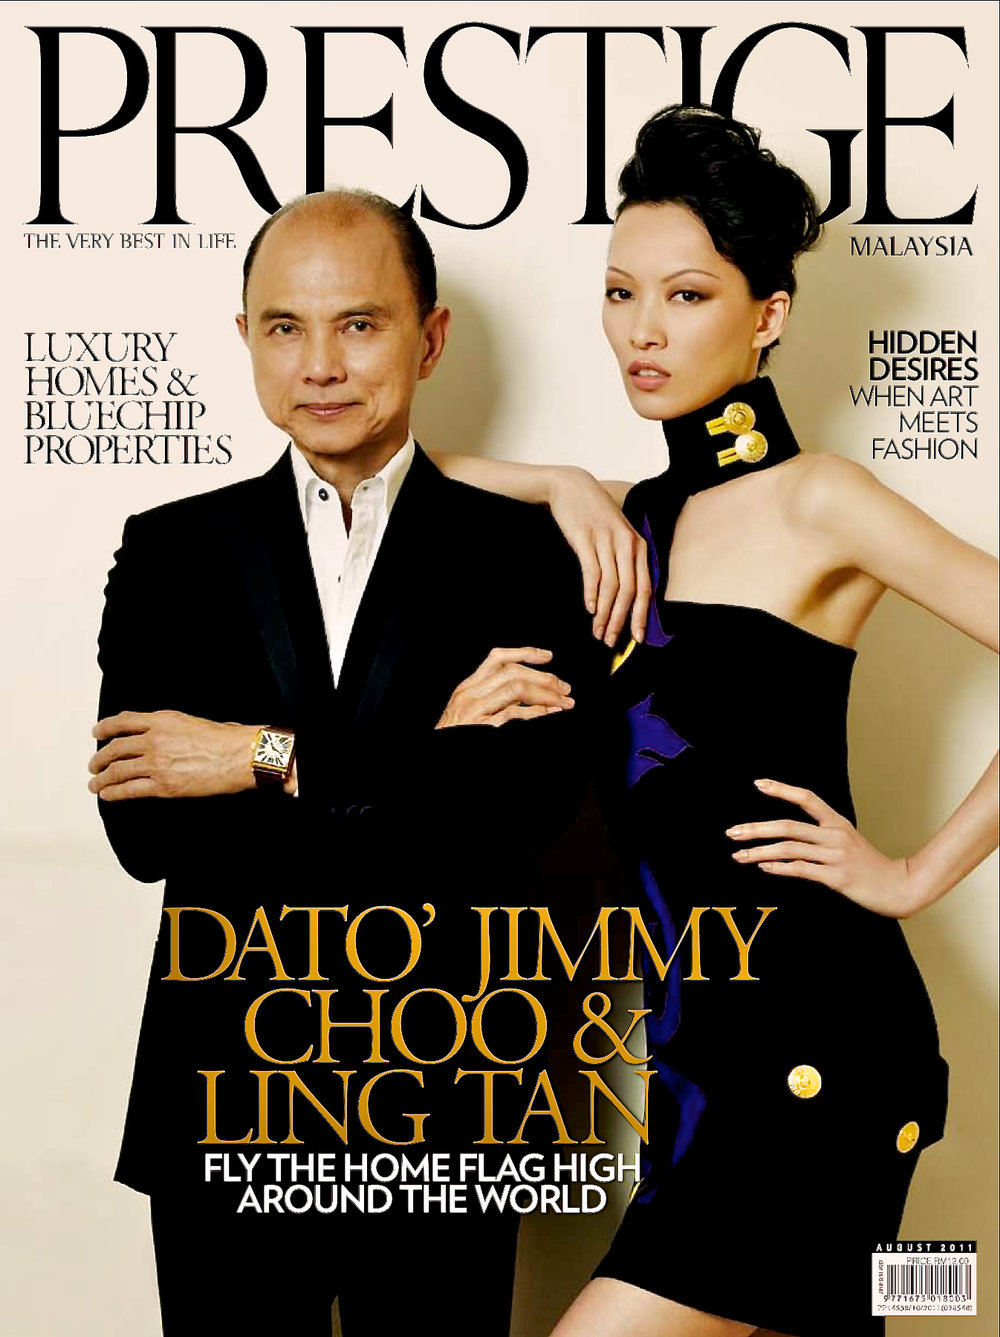 Prestige Cover copy.jpg